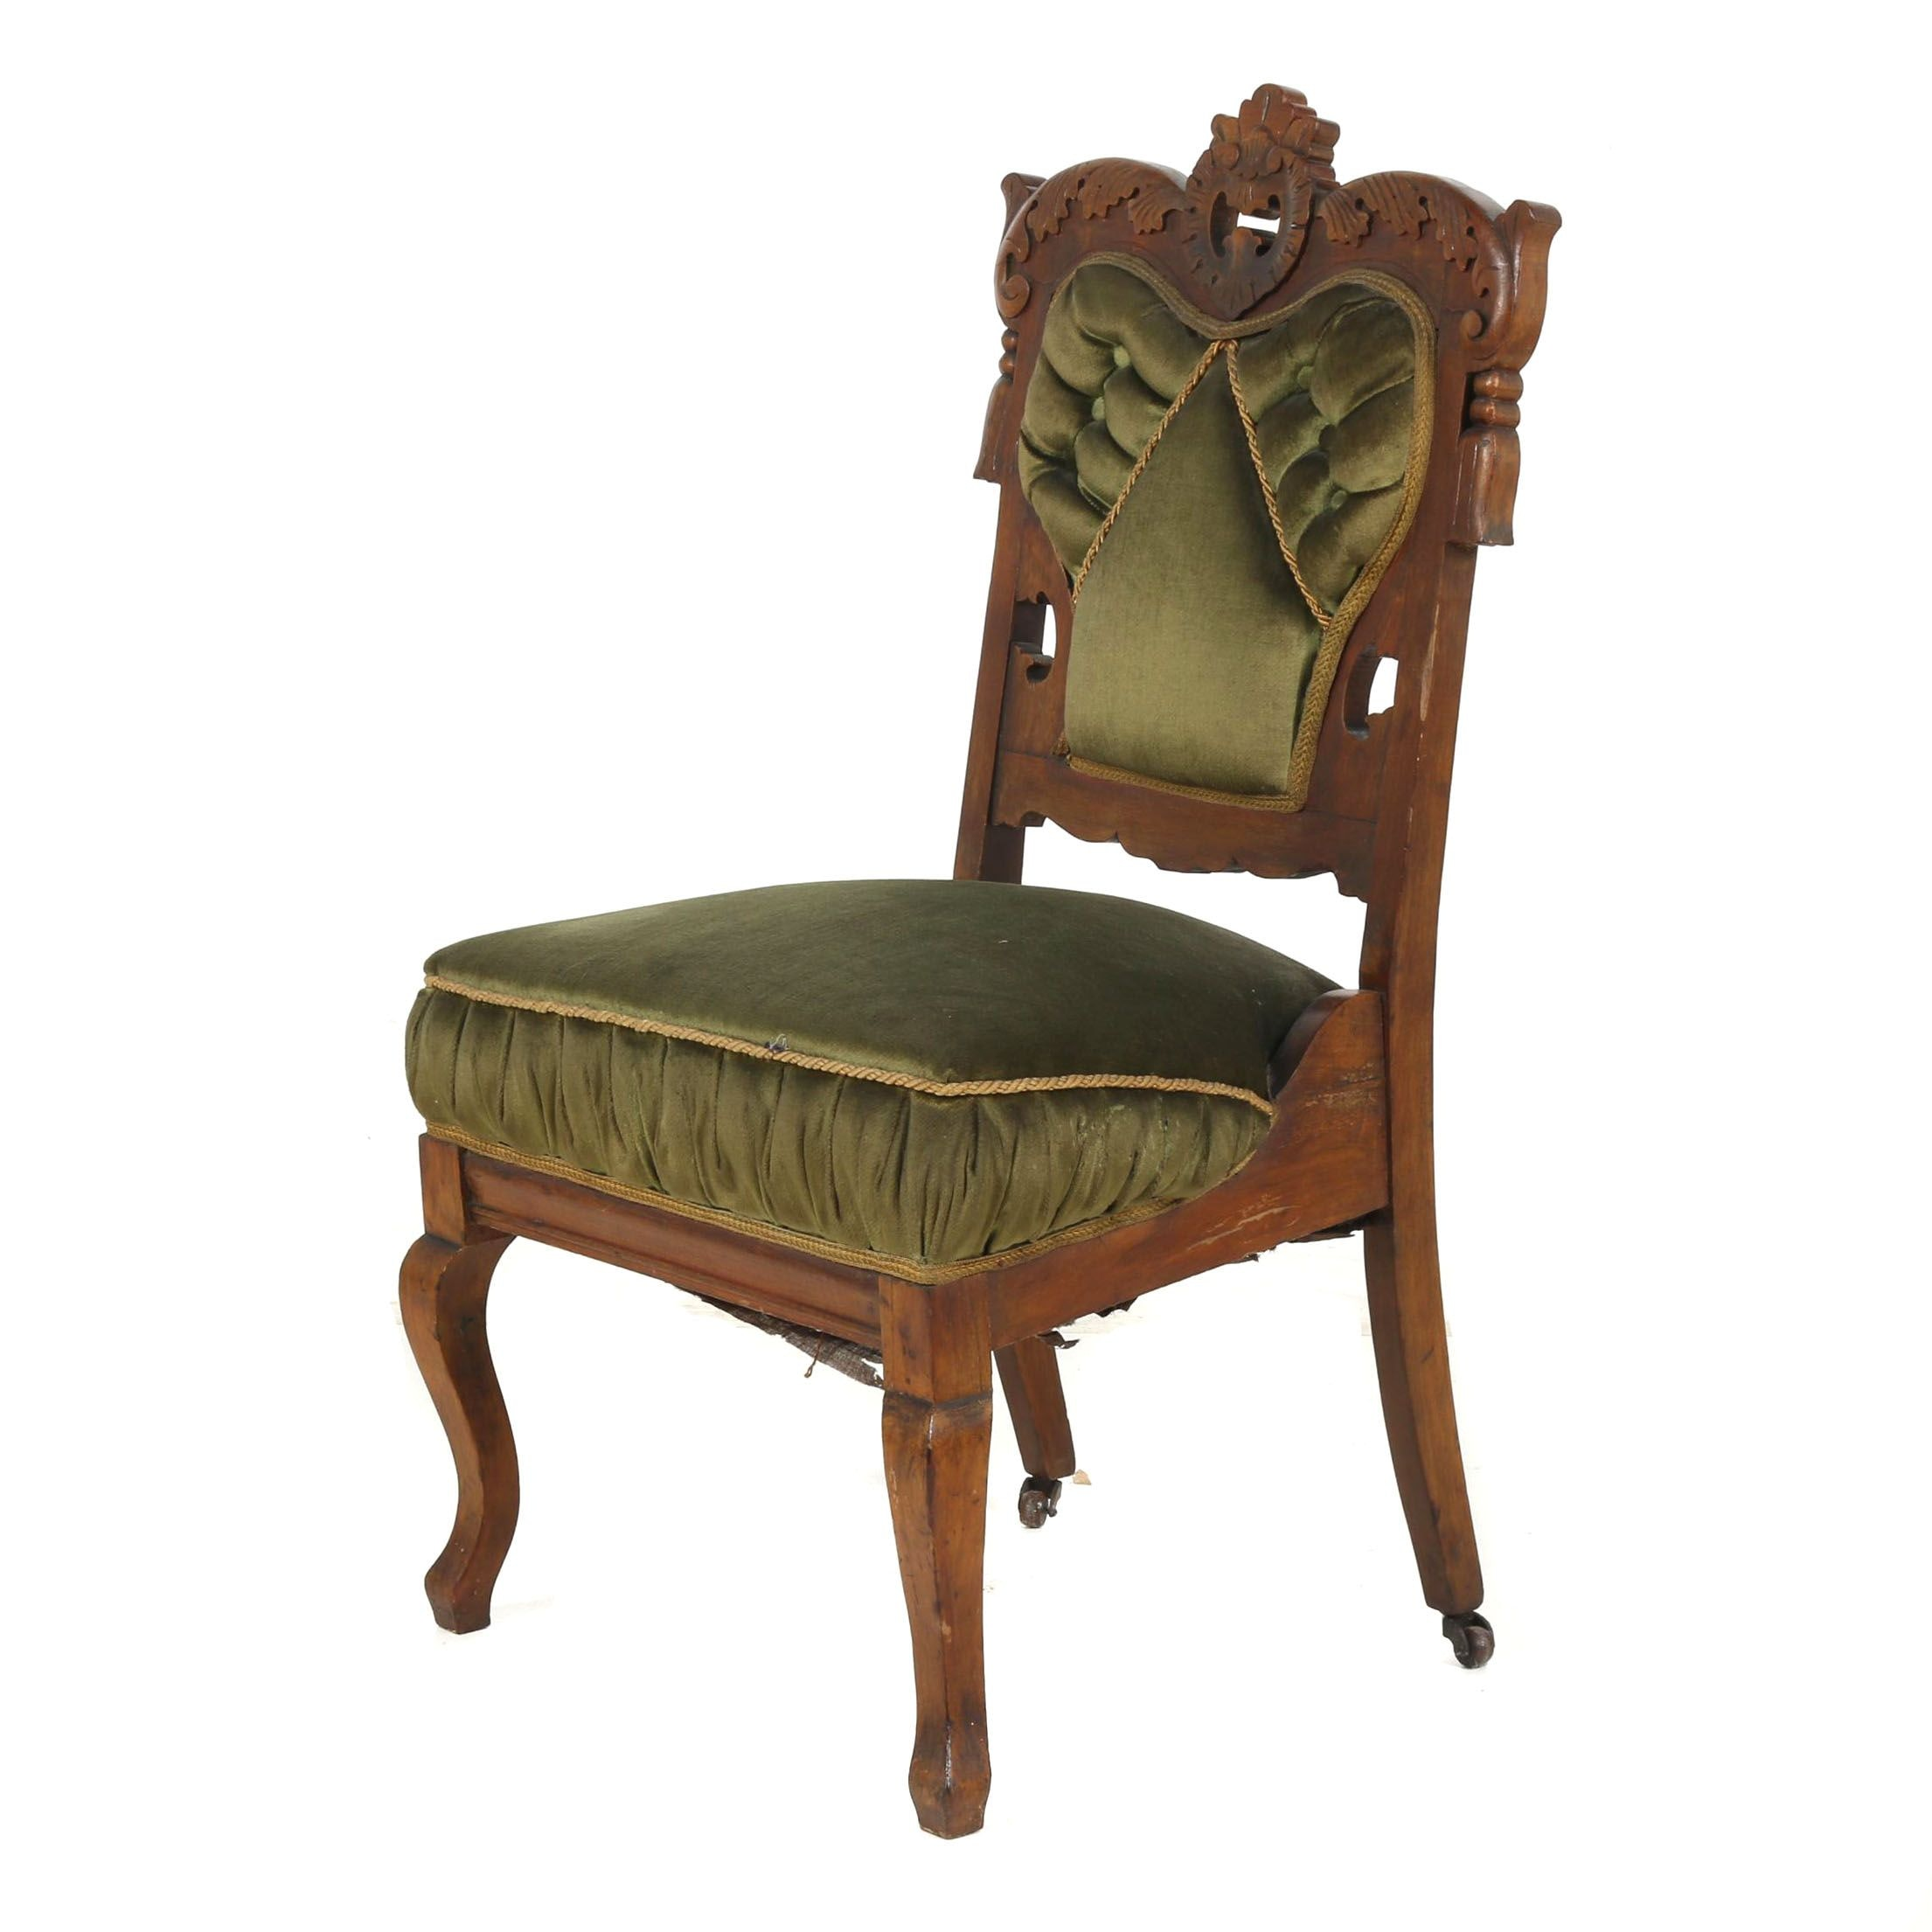 Eastlake Victorian Carved Walnut Frame Upholstered Side Chair, 19th Century